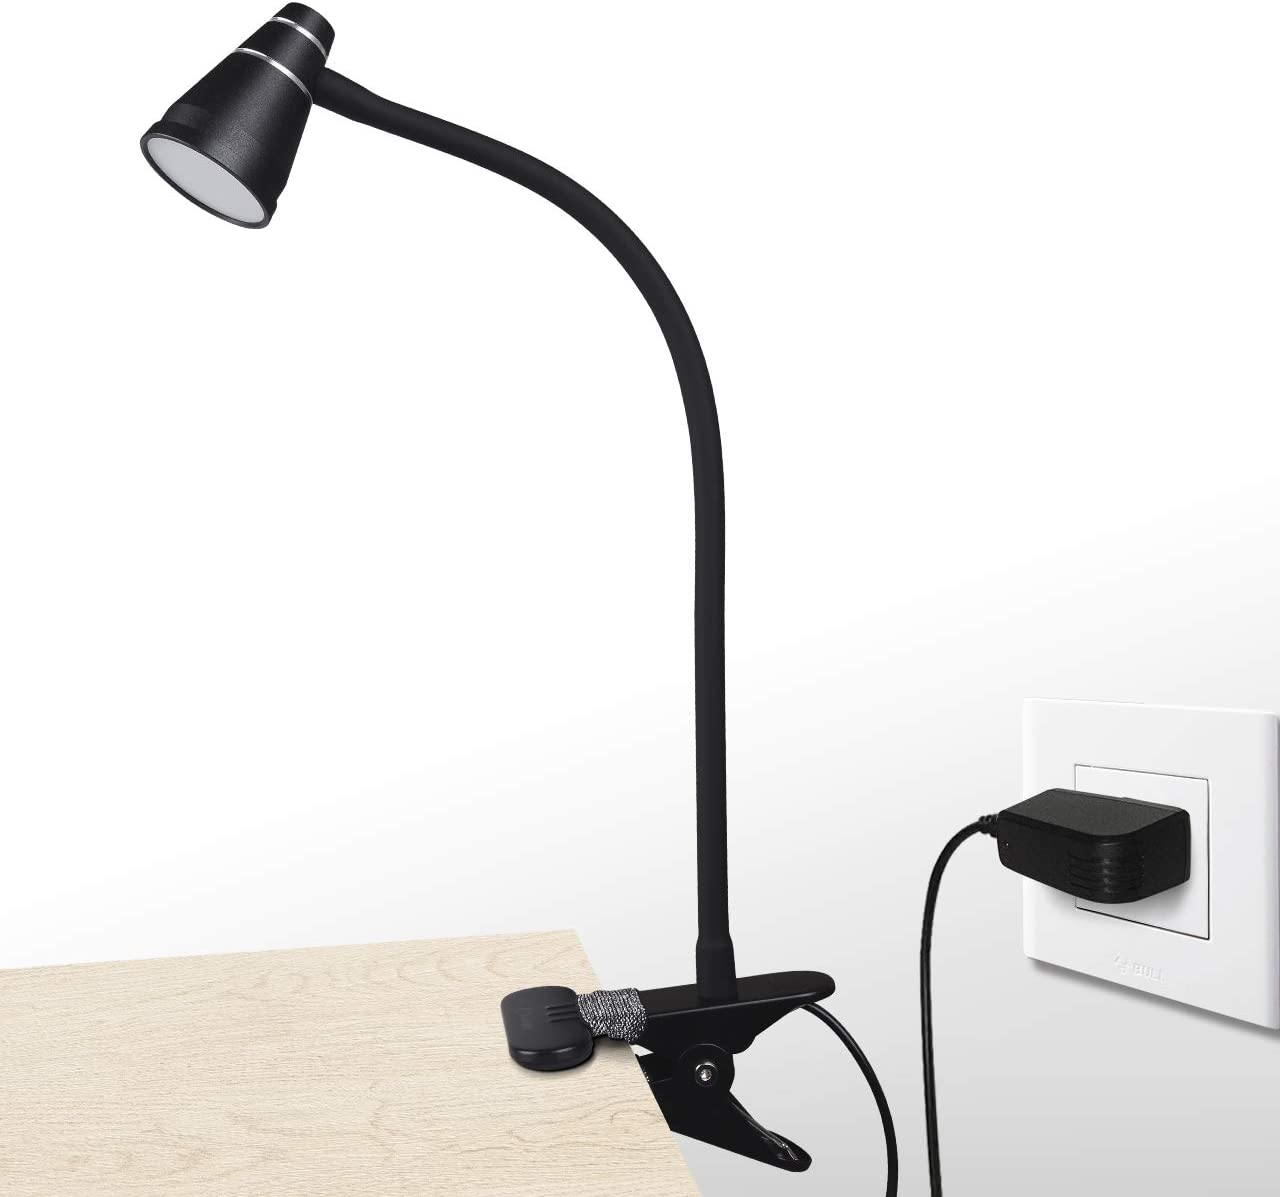 CeSunlight A9 LED Clip Desk Lamp Black , Headboard Light with Strong Clamp, Bed Reading Light with 3000k-6500K Adjustable Color Temperature Options for Brighter Illumination